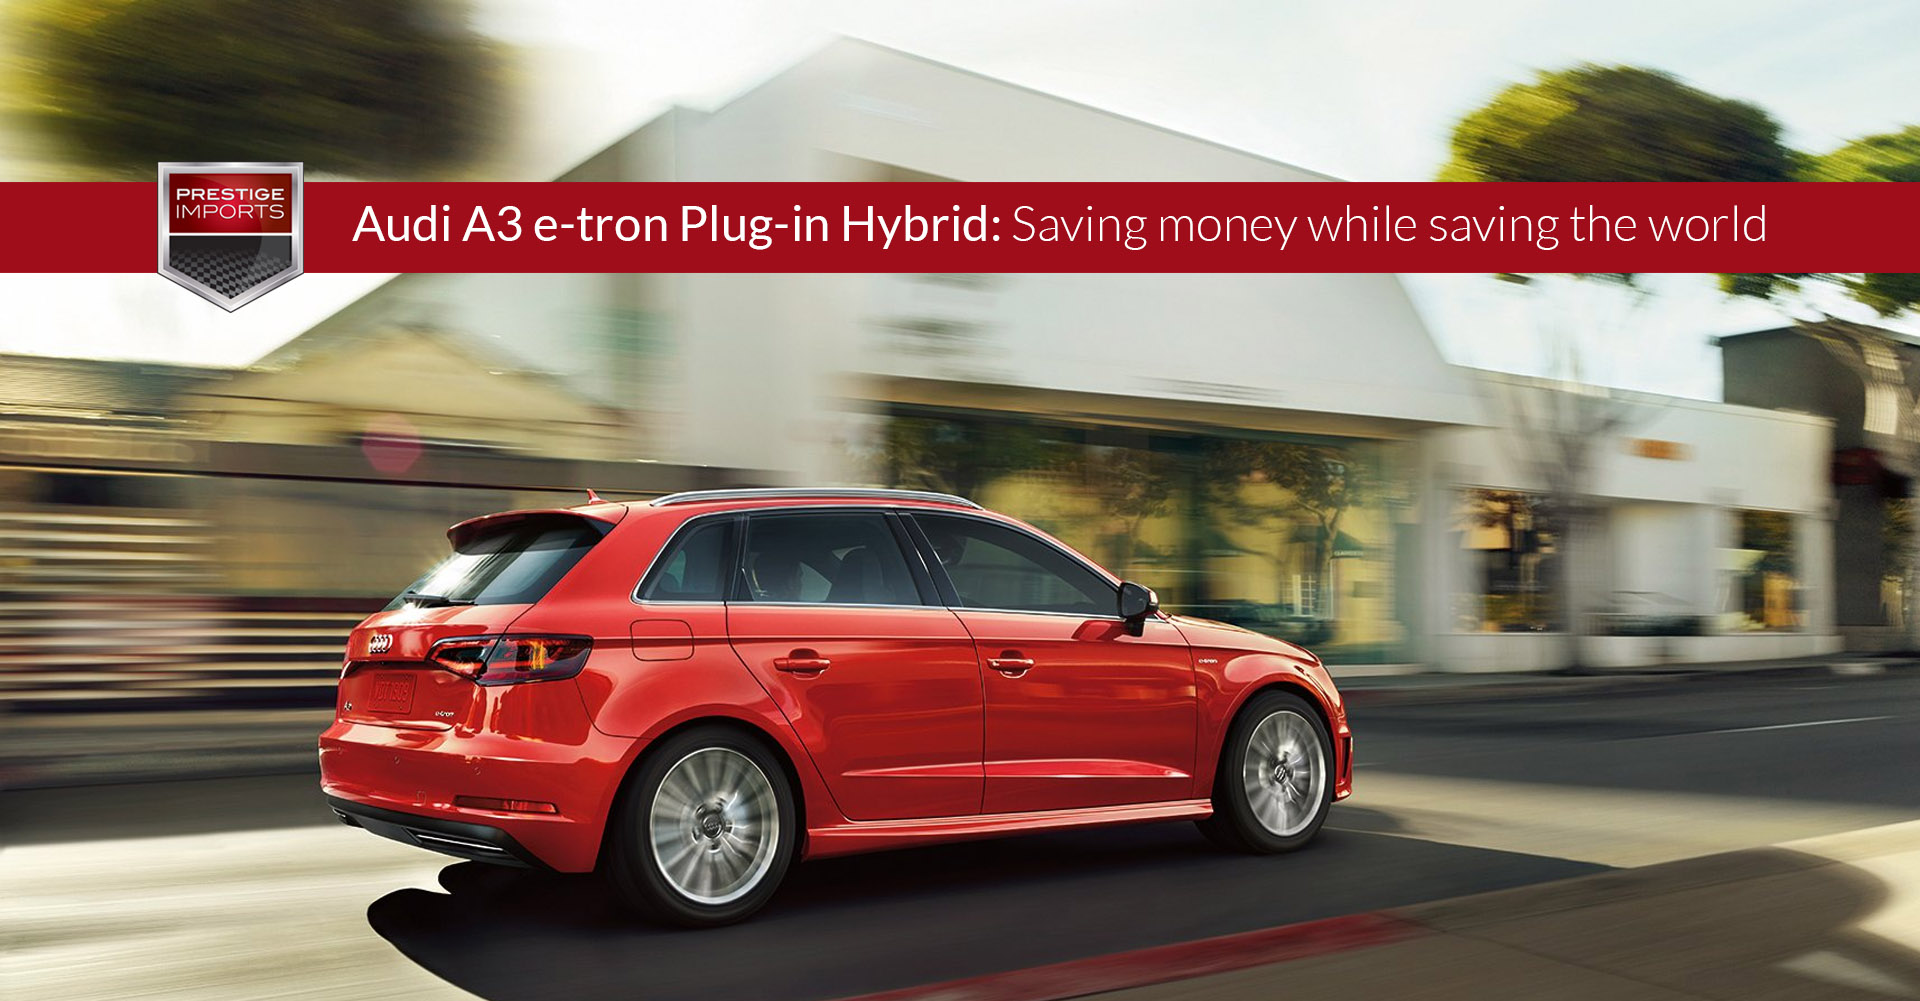 "Photo of the the A3 e-tron on a city street. Used to illustrate the article ""Audi A3 e-tron Plug-in Hybrid: Saving money while saving the world""."